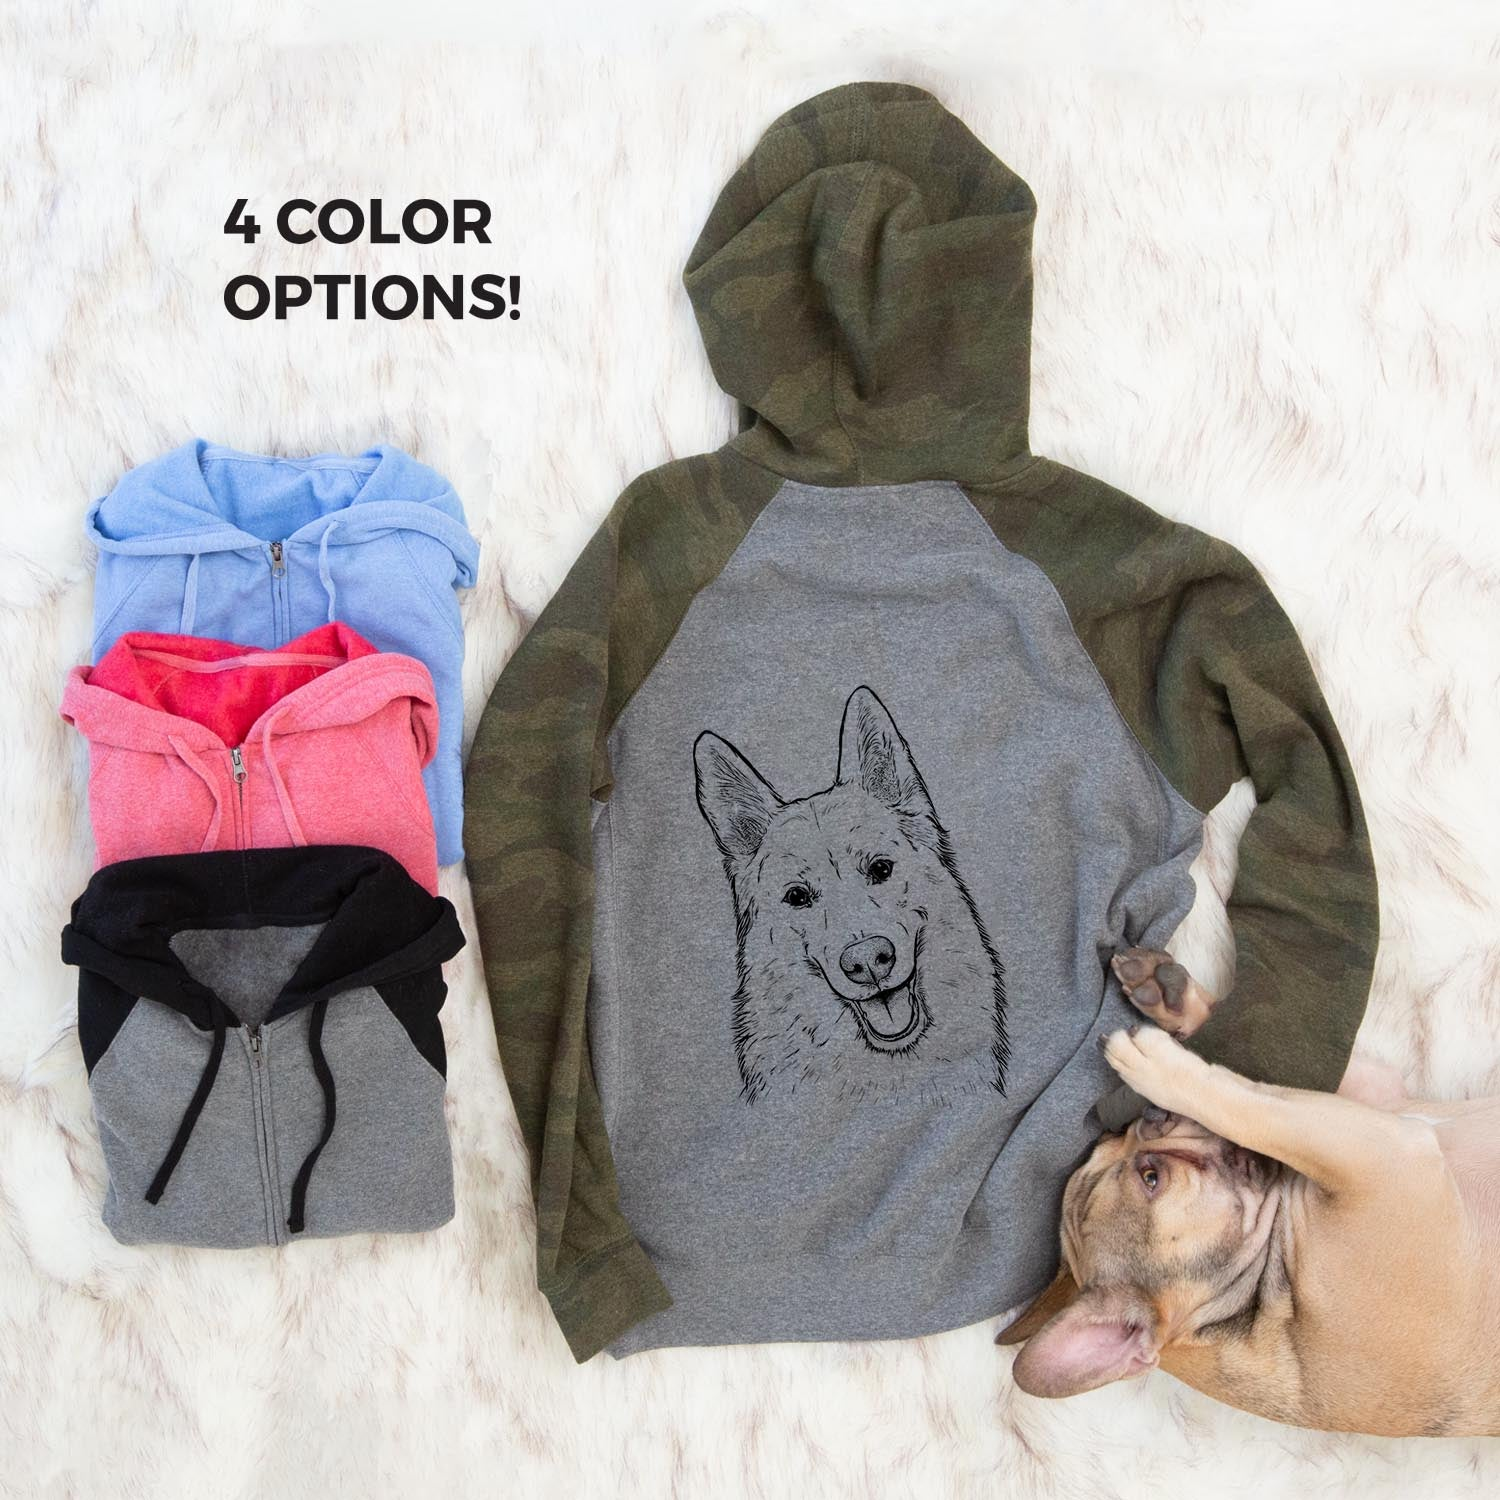 Loki the Husky Shepherd Mix - Unisex Raglan Zip Up Hoodie